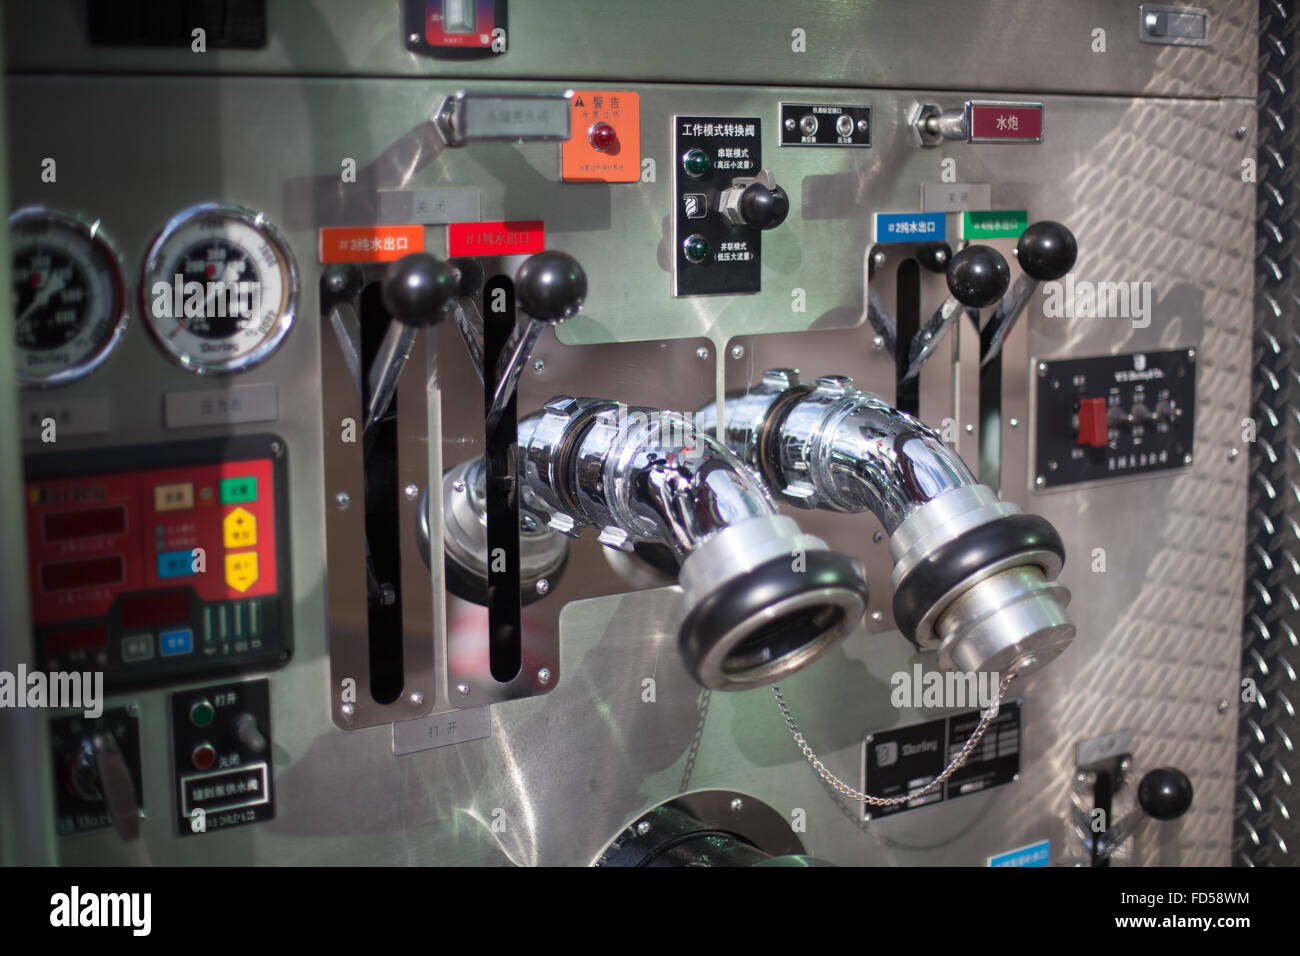 Gauges And Levers On Control Panel - Stock Image